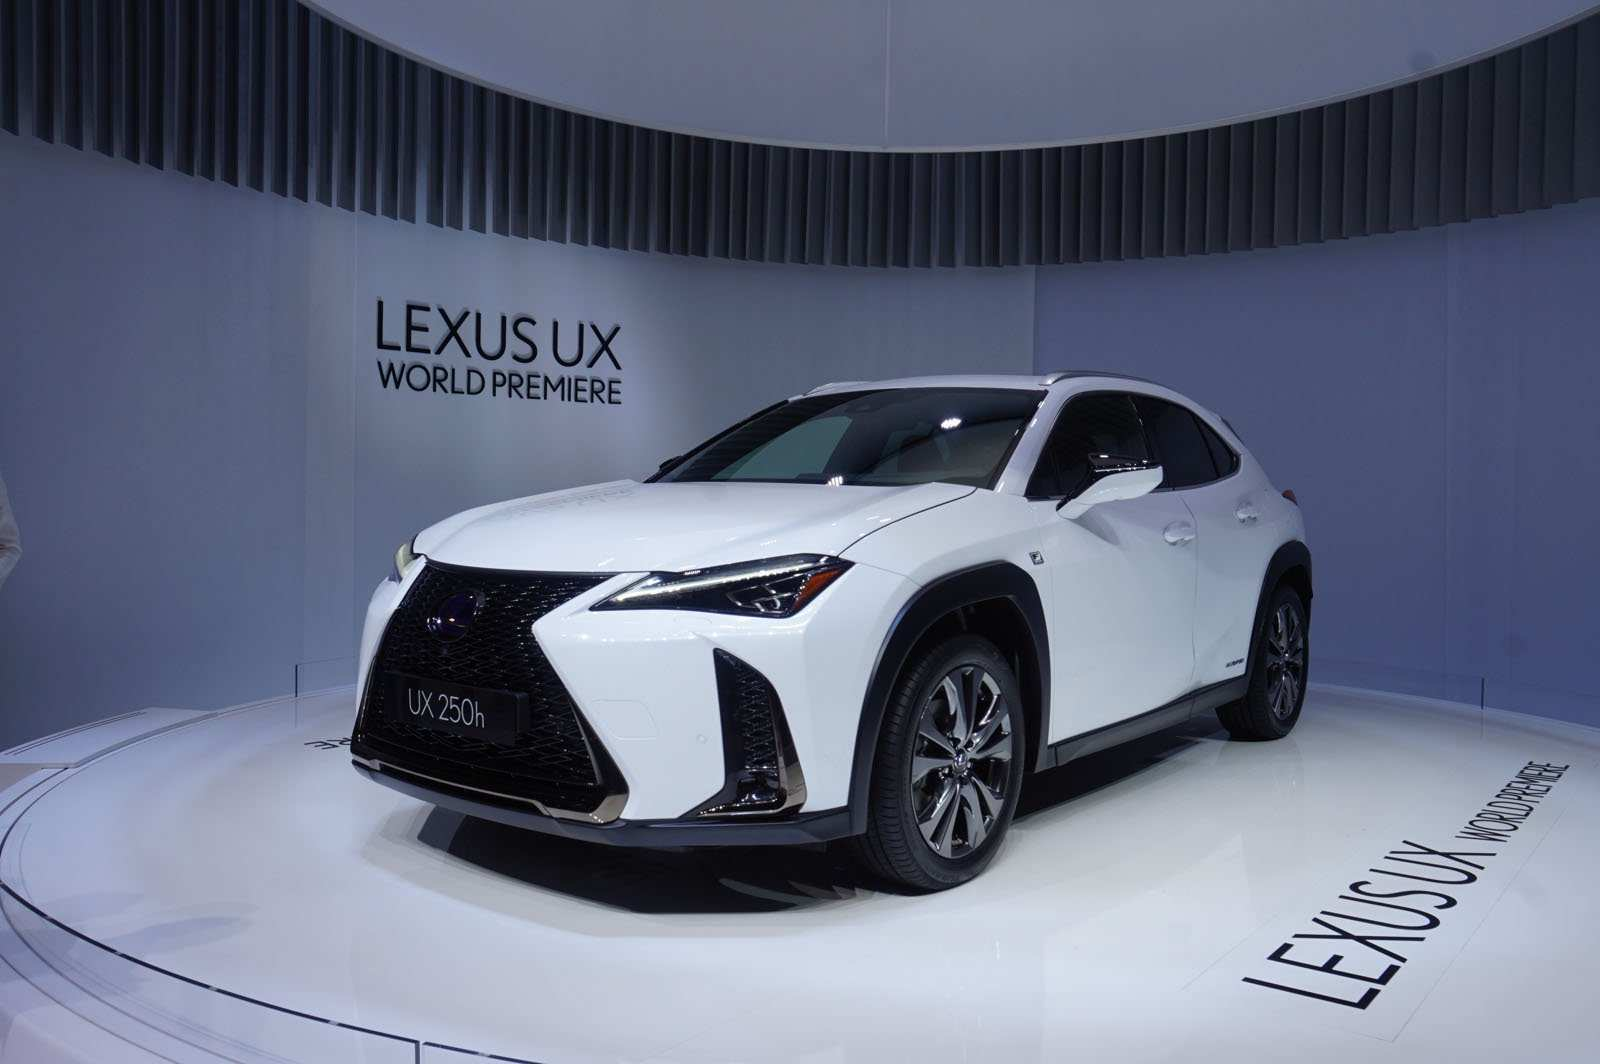 97 The Are The 2019 Lexus Out Yet Exterior and Interior